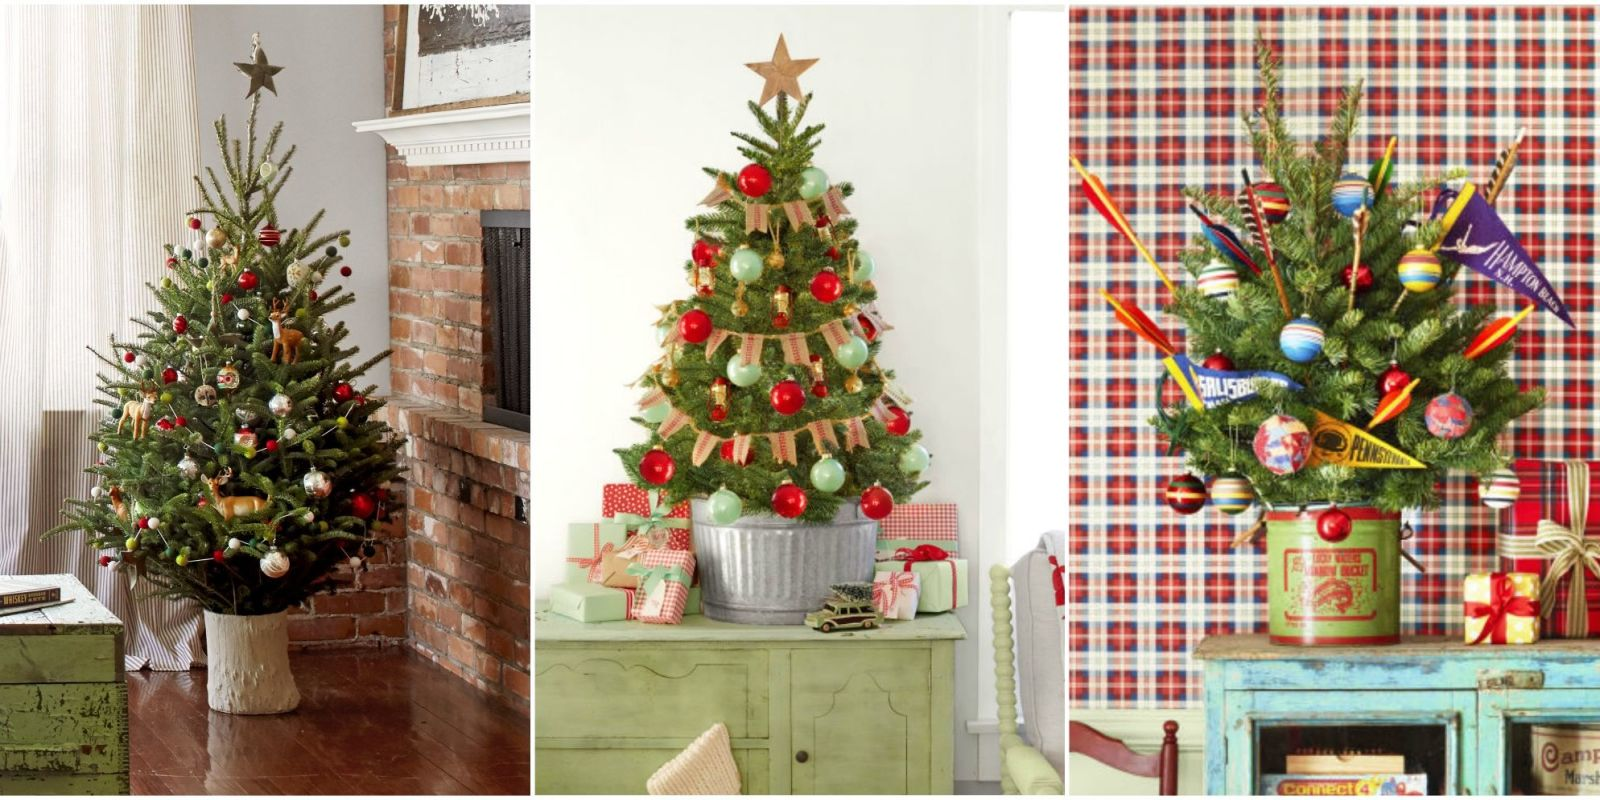 18 best small christmas trees ideas for decorating mini christmas trees. Black Bedroom Furniture Sets. Home Design Ideas